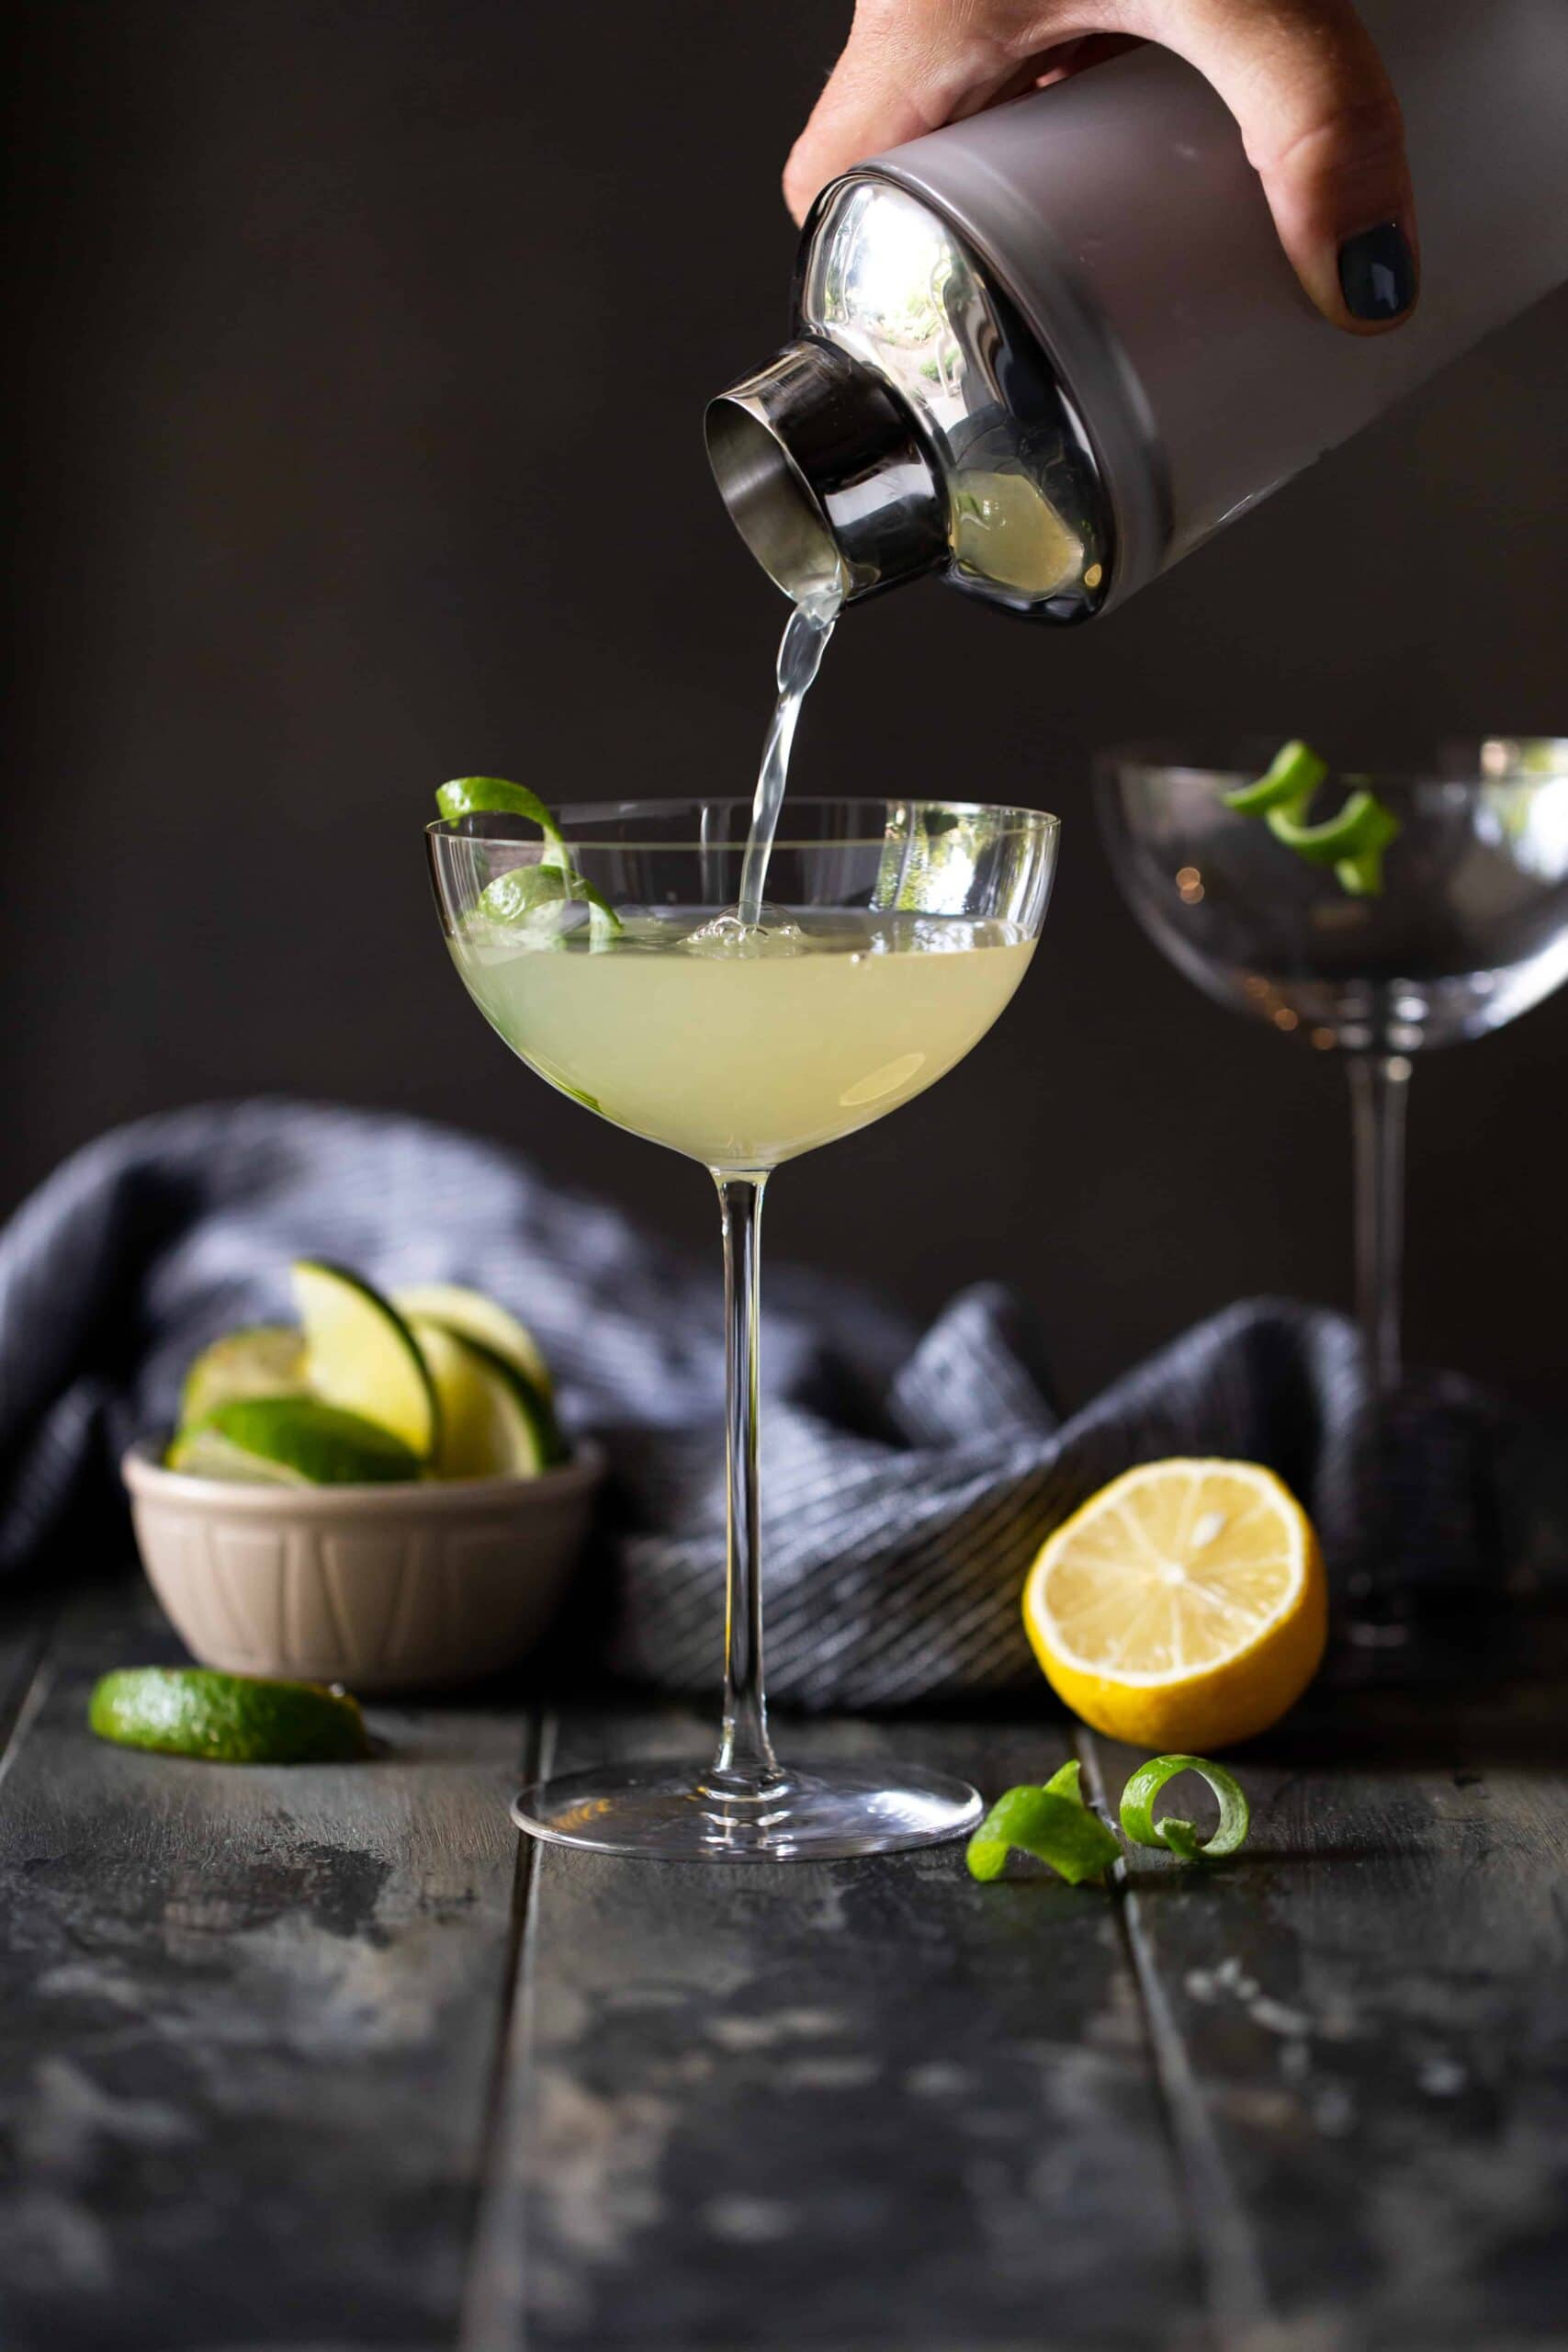 Martini being poured from a shaker into a tall coupe glass with fresh lemon and limes.